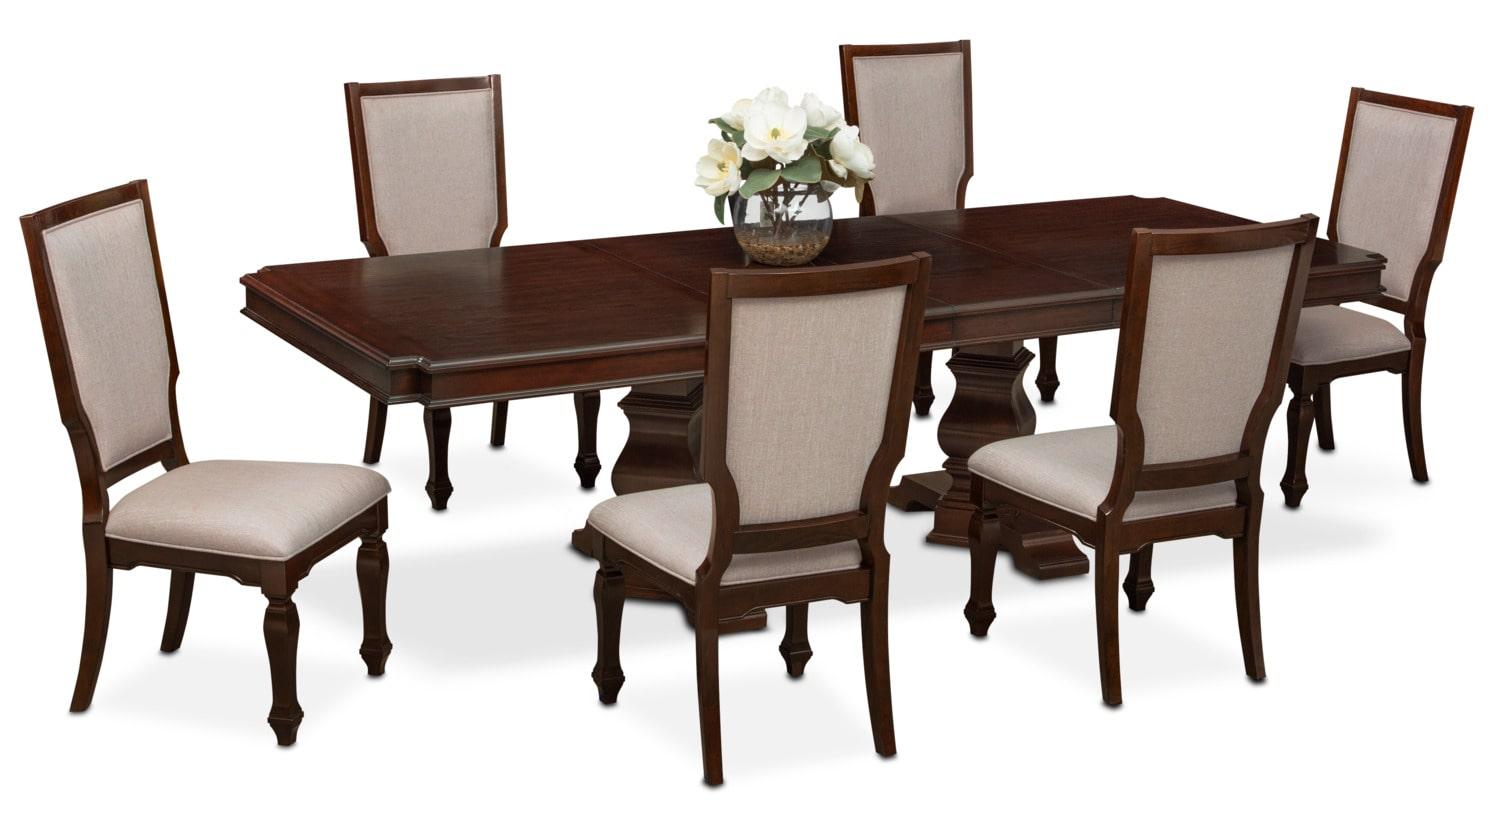 Vienna Dining Table And 6 Upholstered Side Chairs   Merlot